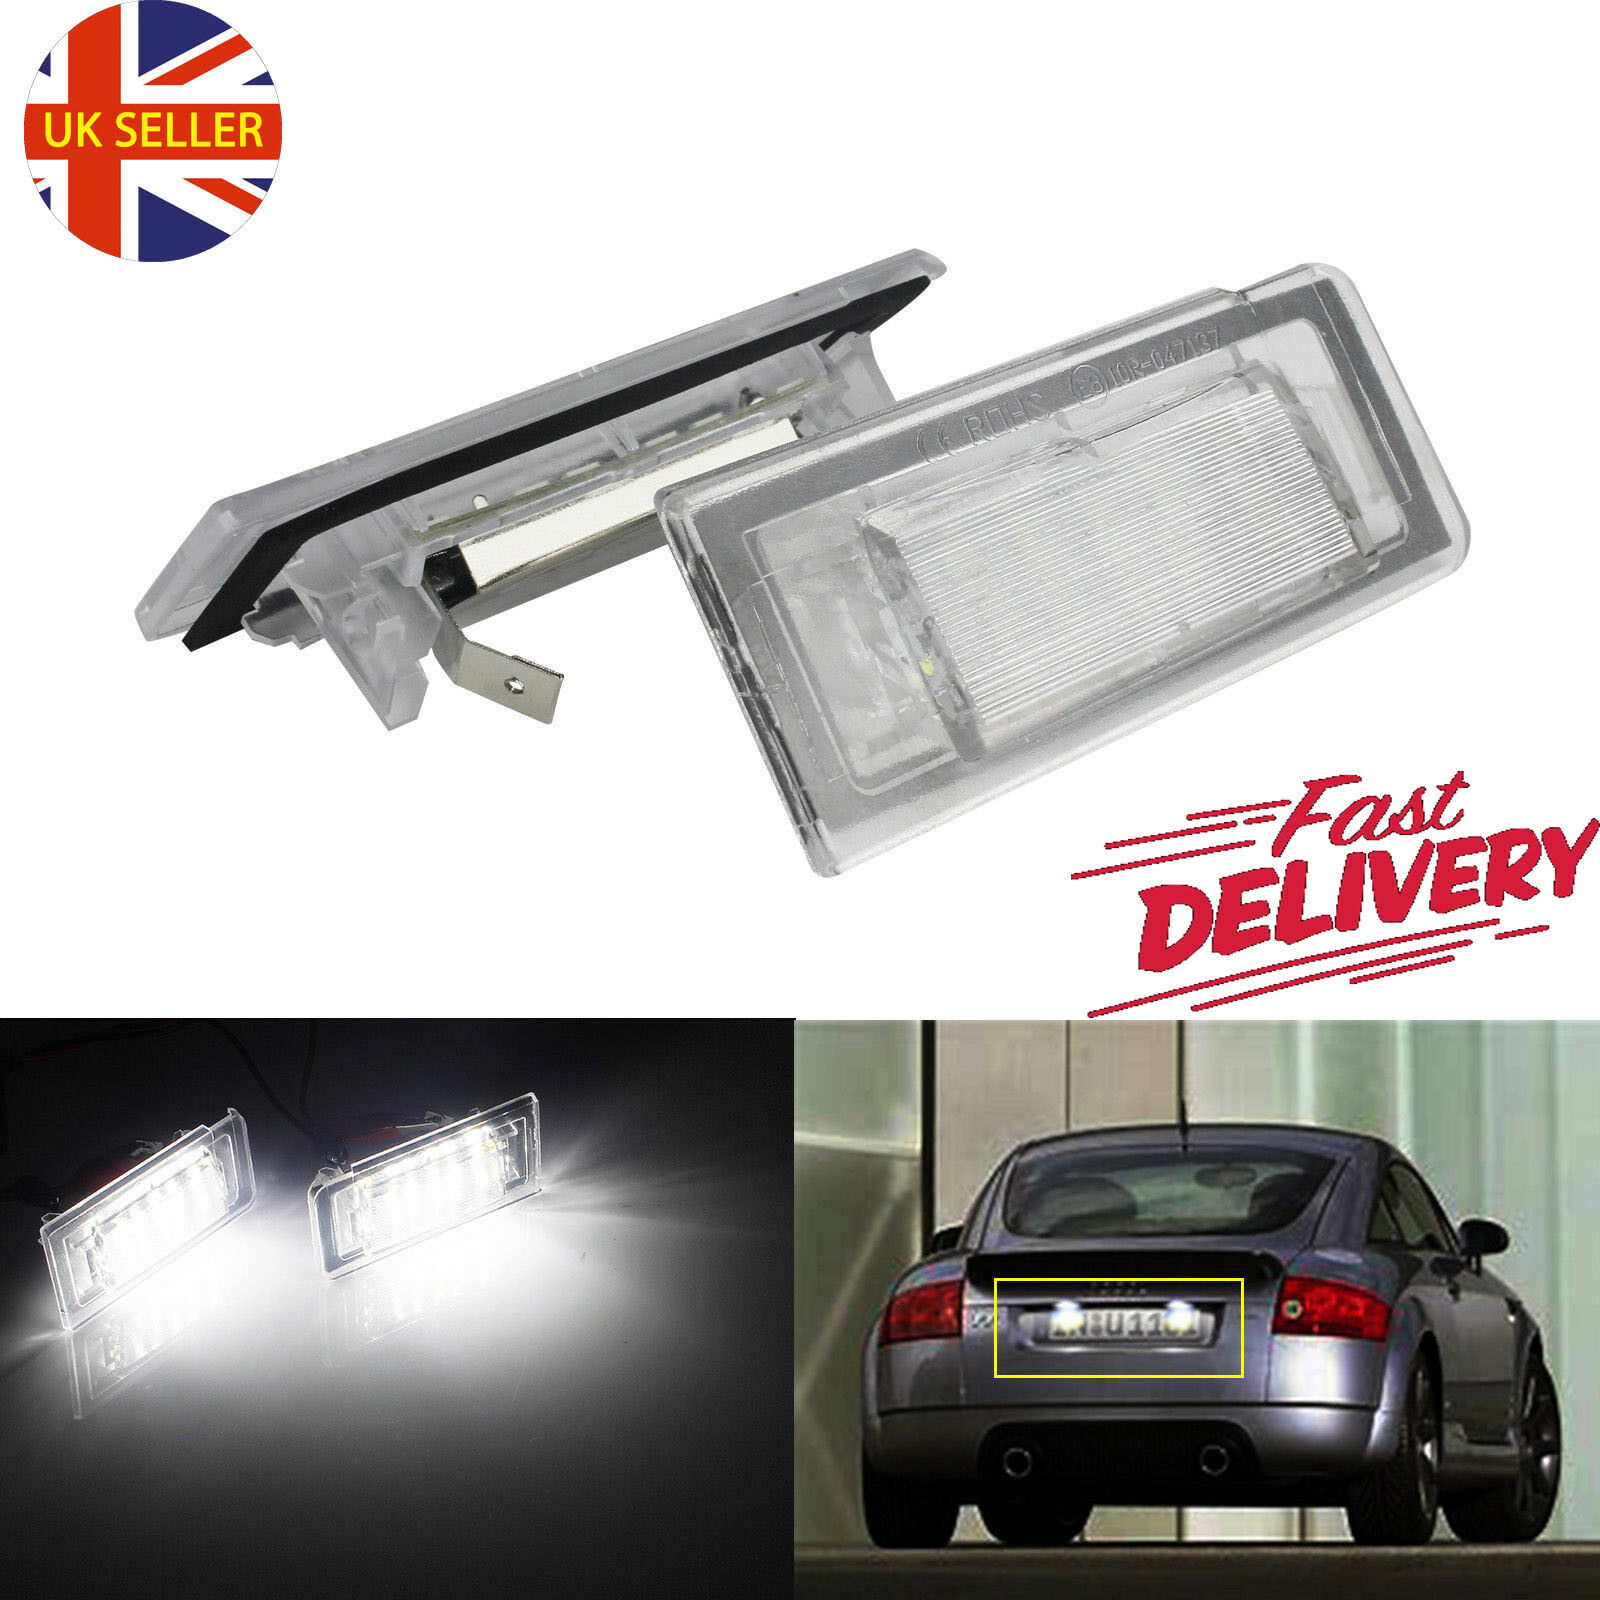 Xenon LED License Number Plate Light Lamp Canbus For Audi TT Mk1 8N 1999-2006 UK